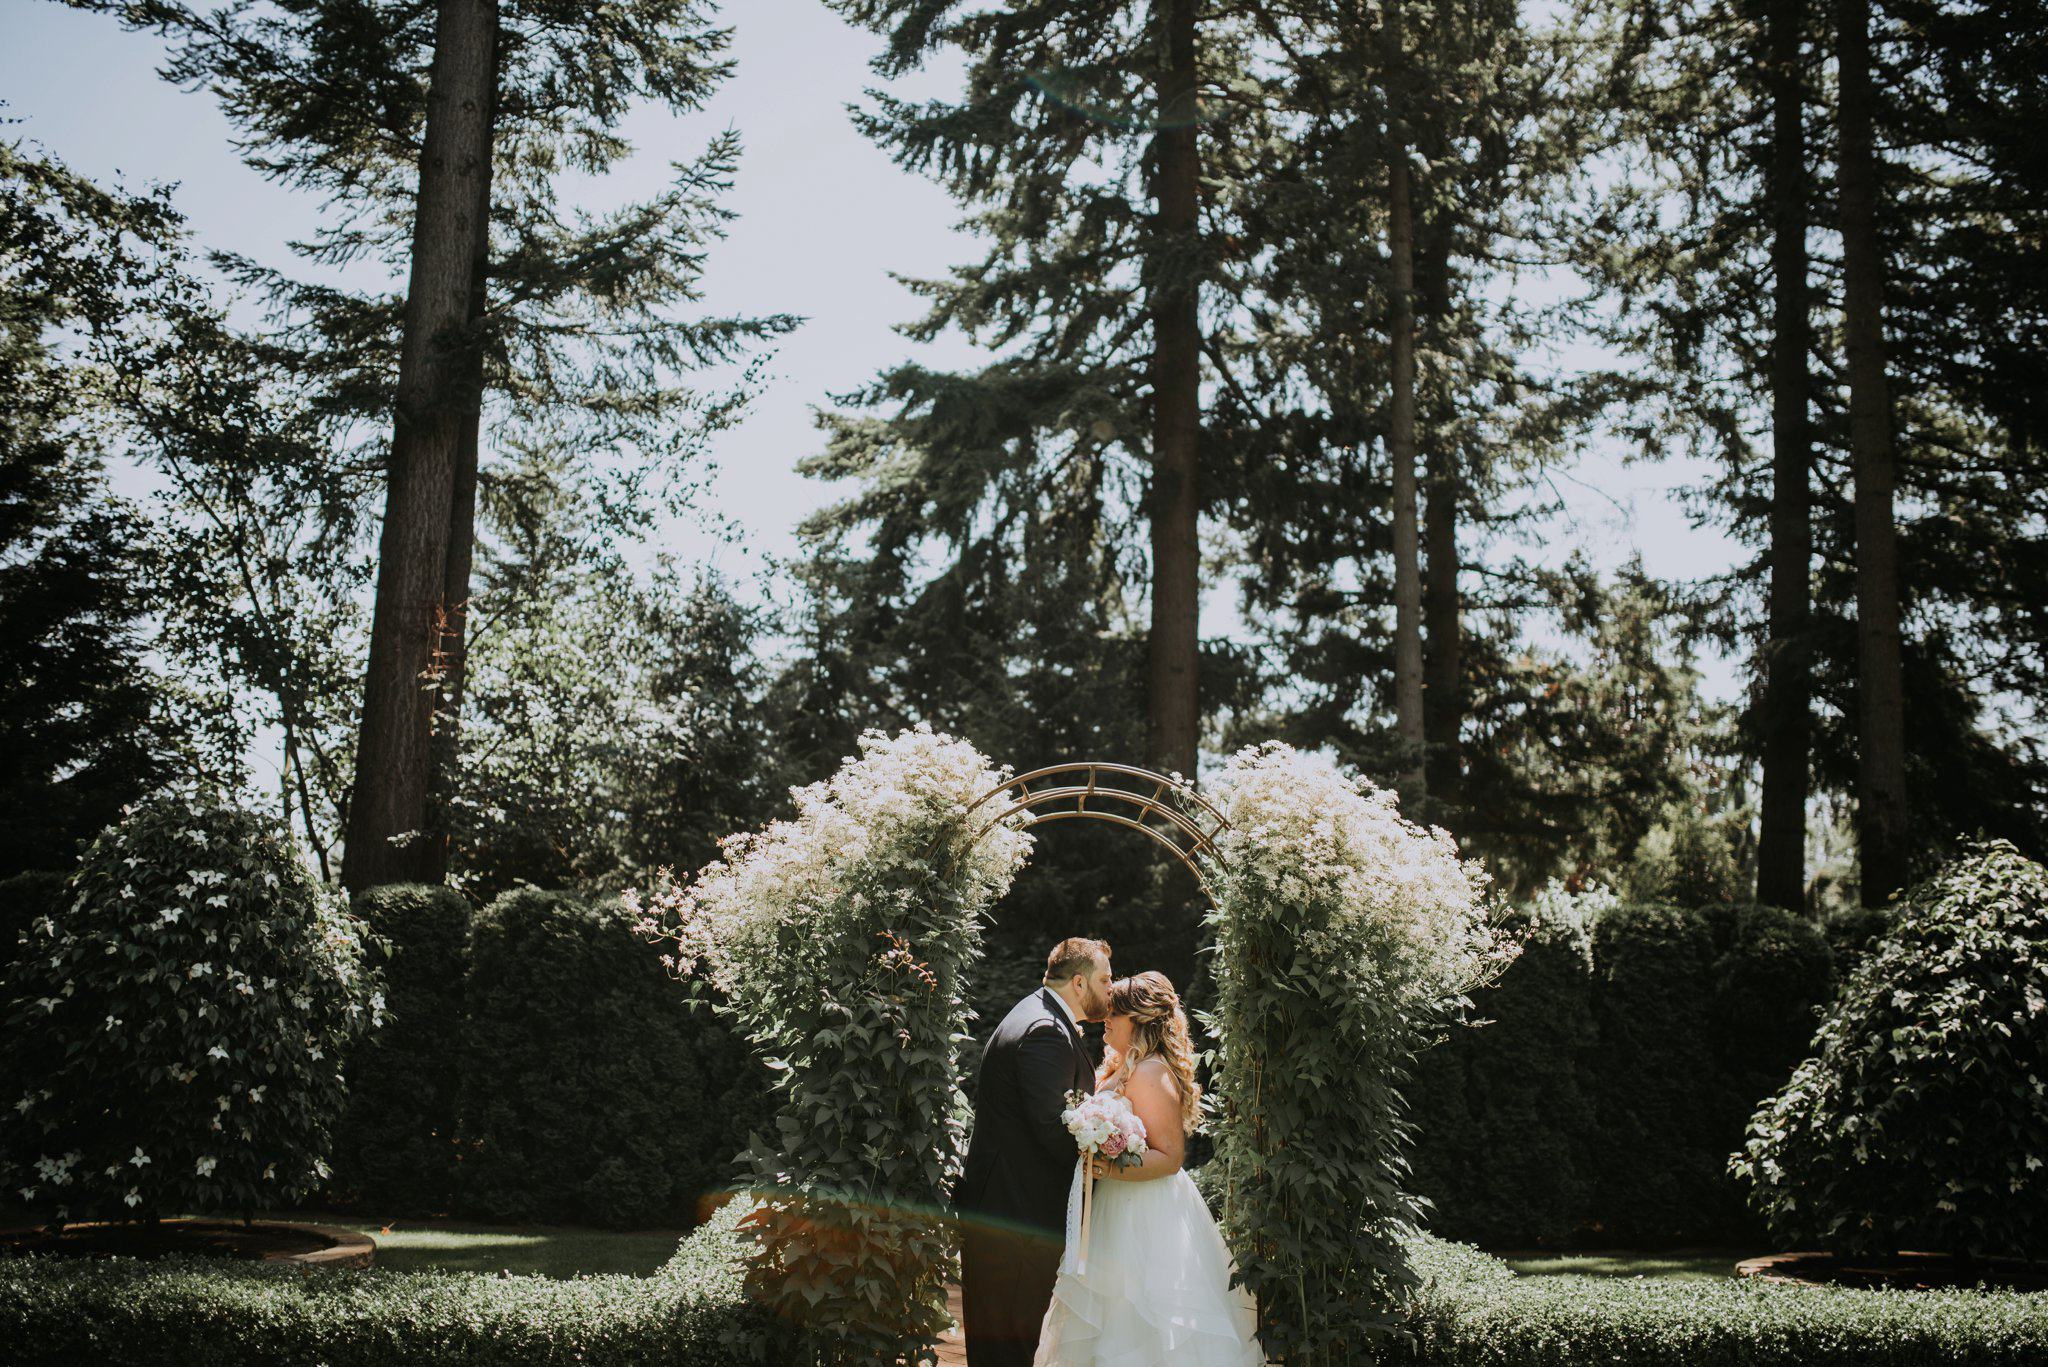 evergreen-gardens-bellingham-wedding-seattle-photographer-caitlyn-nikula-45.jpg